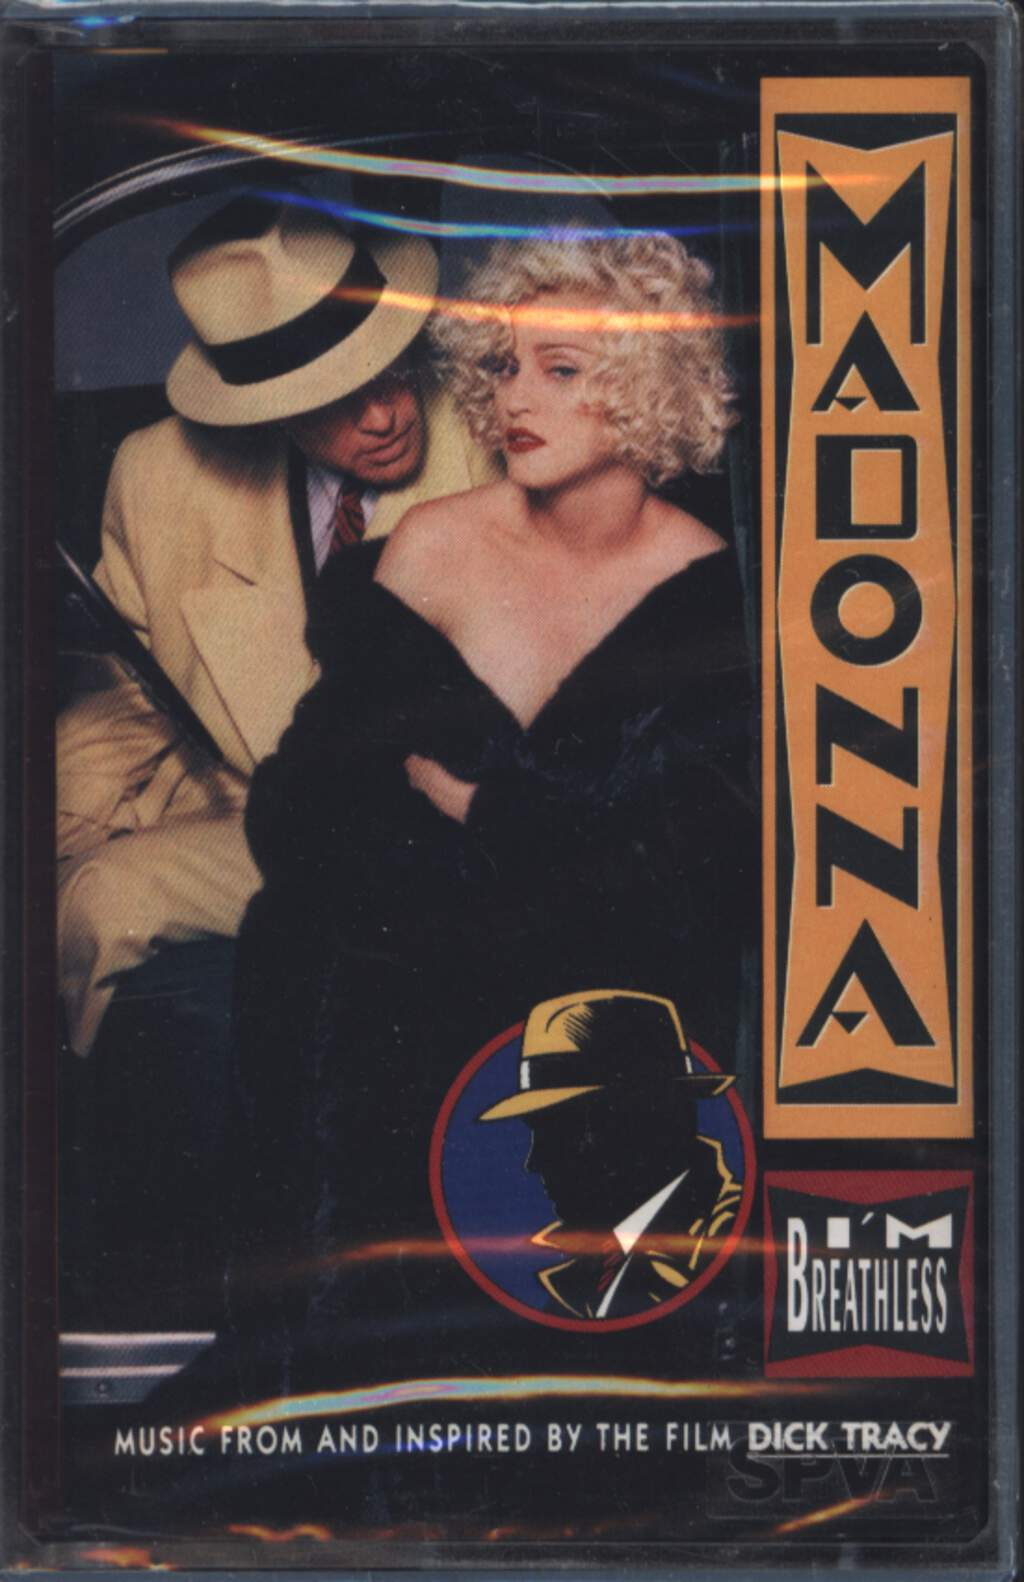 Madonna: I'm Breathless (Music From And Inspired By The Film Dick Tracy), Compact Cassette